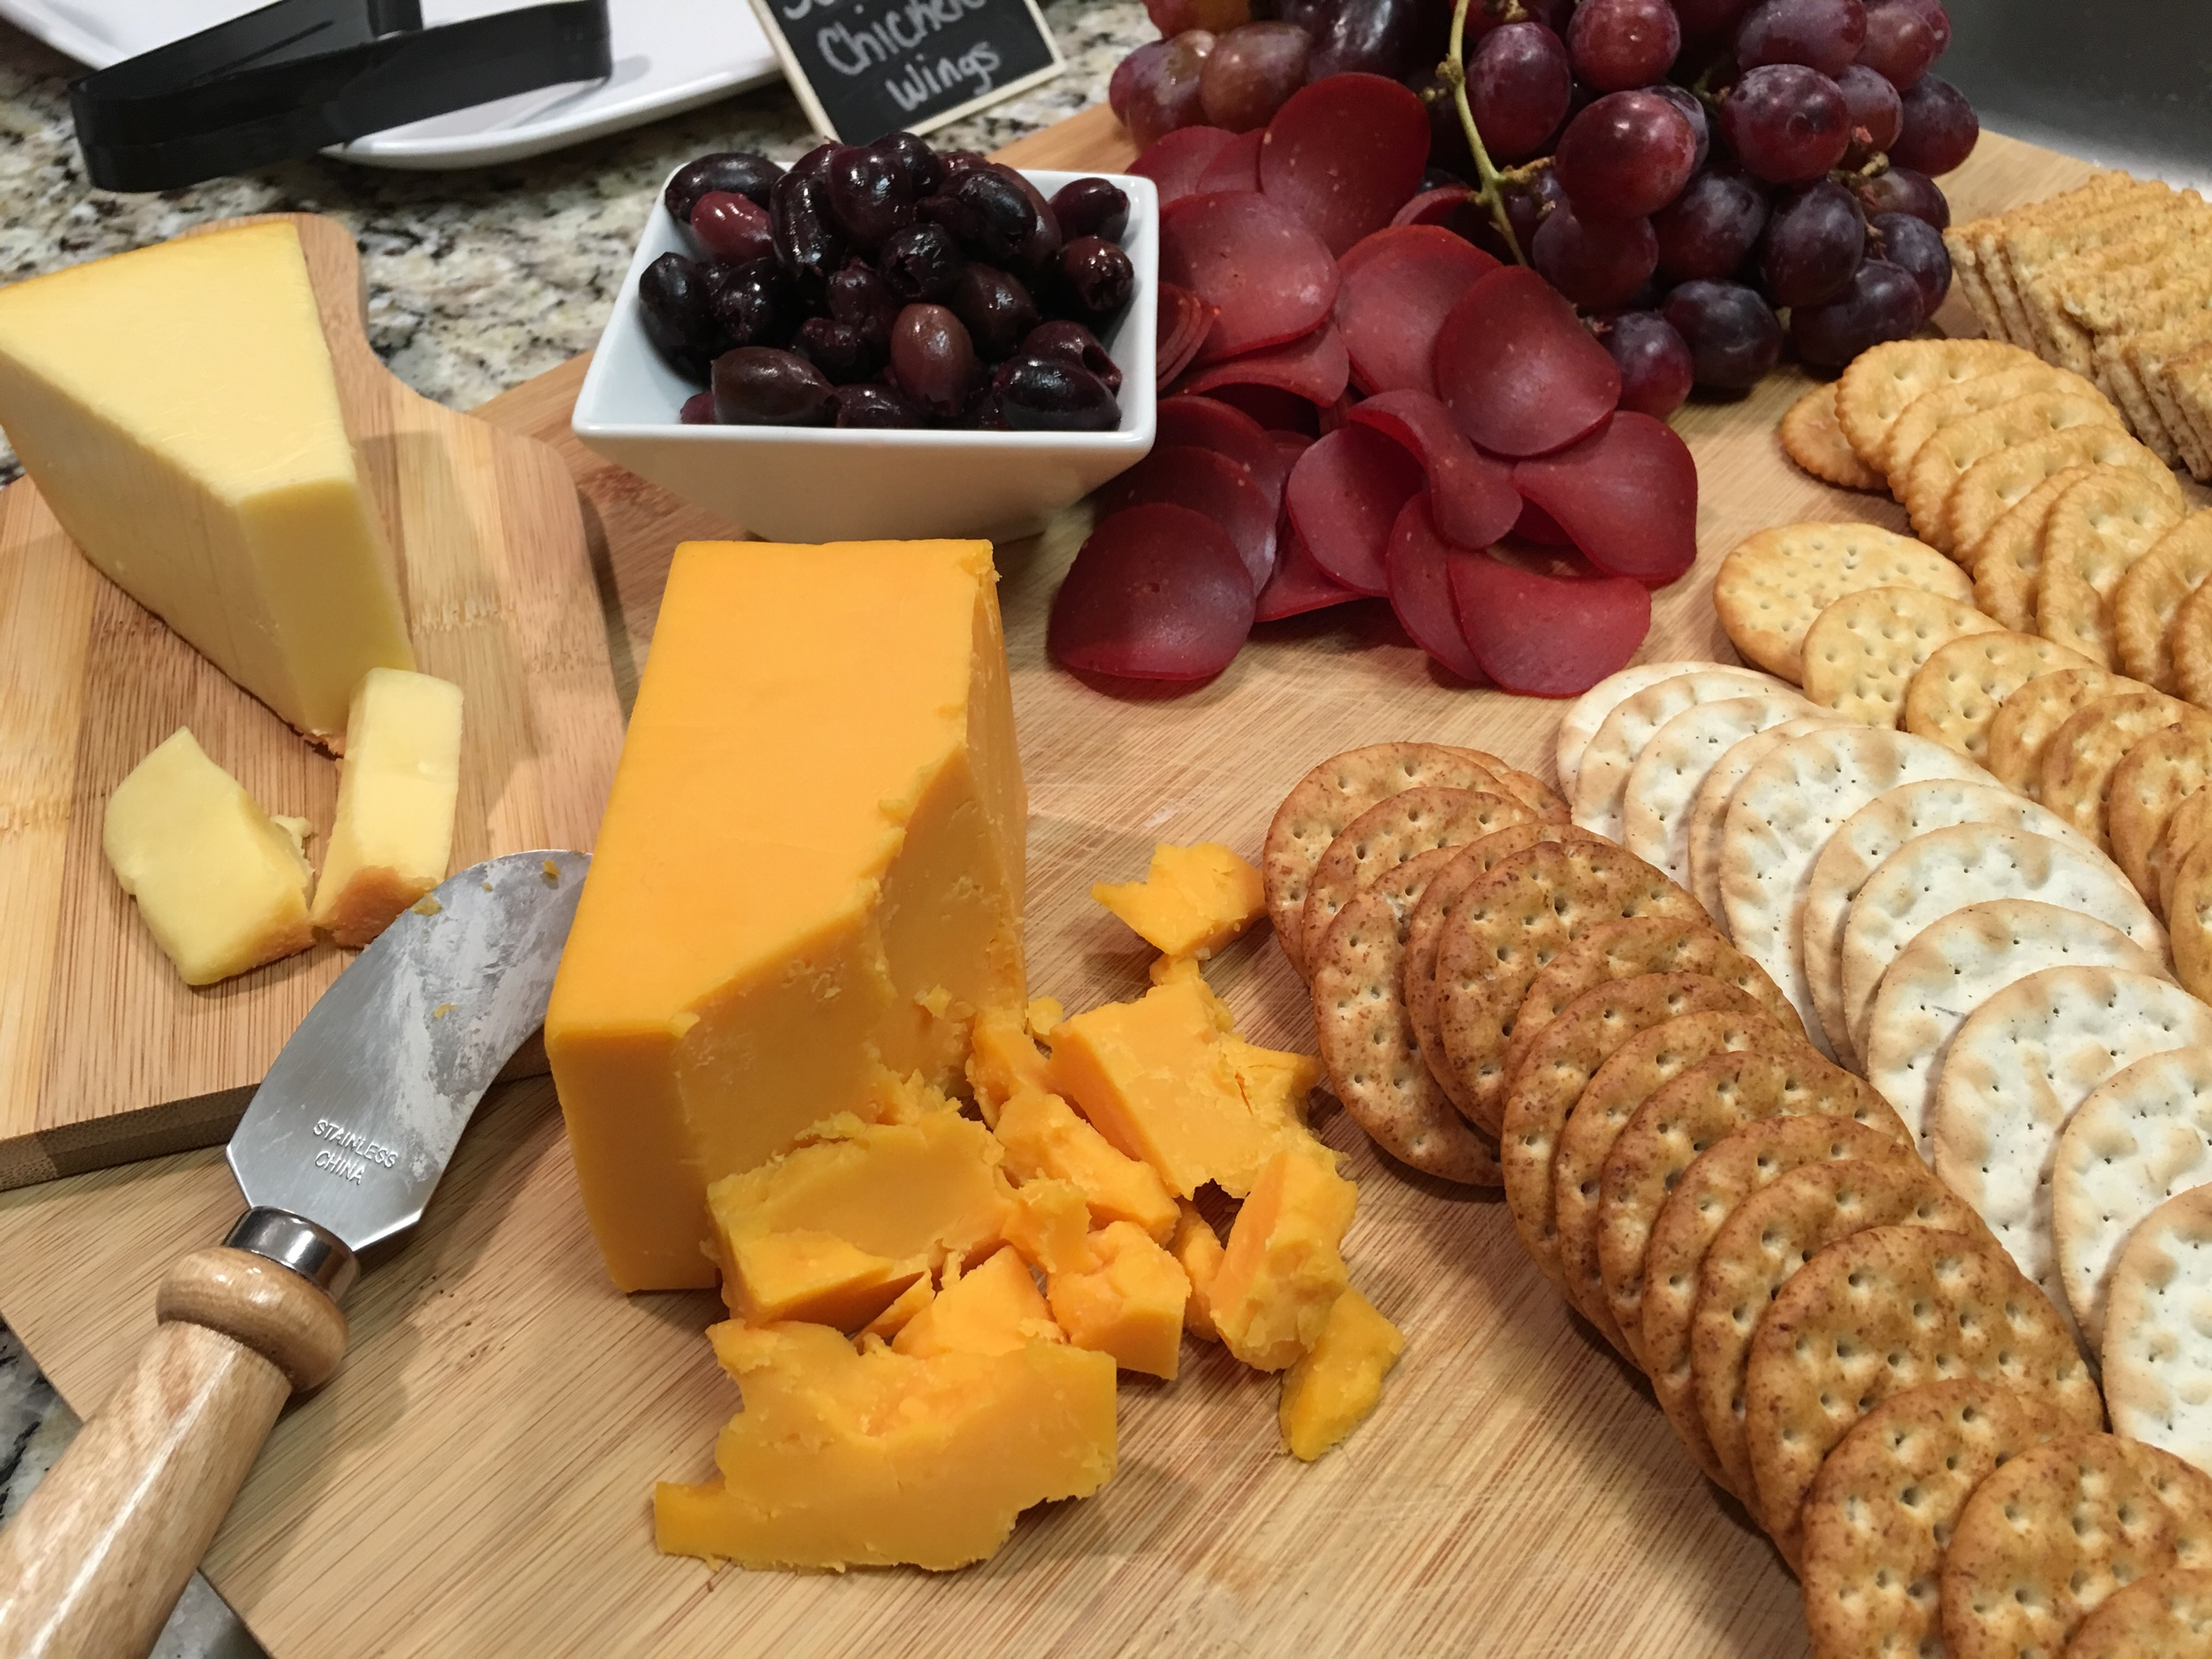 sam-c-perry-tips-for-throwing-the-ultimate-house-party-cheese-plate.jpg